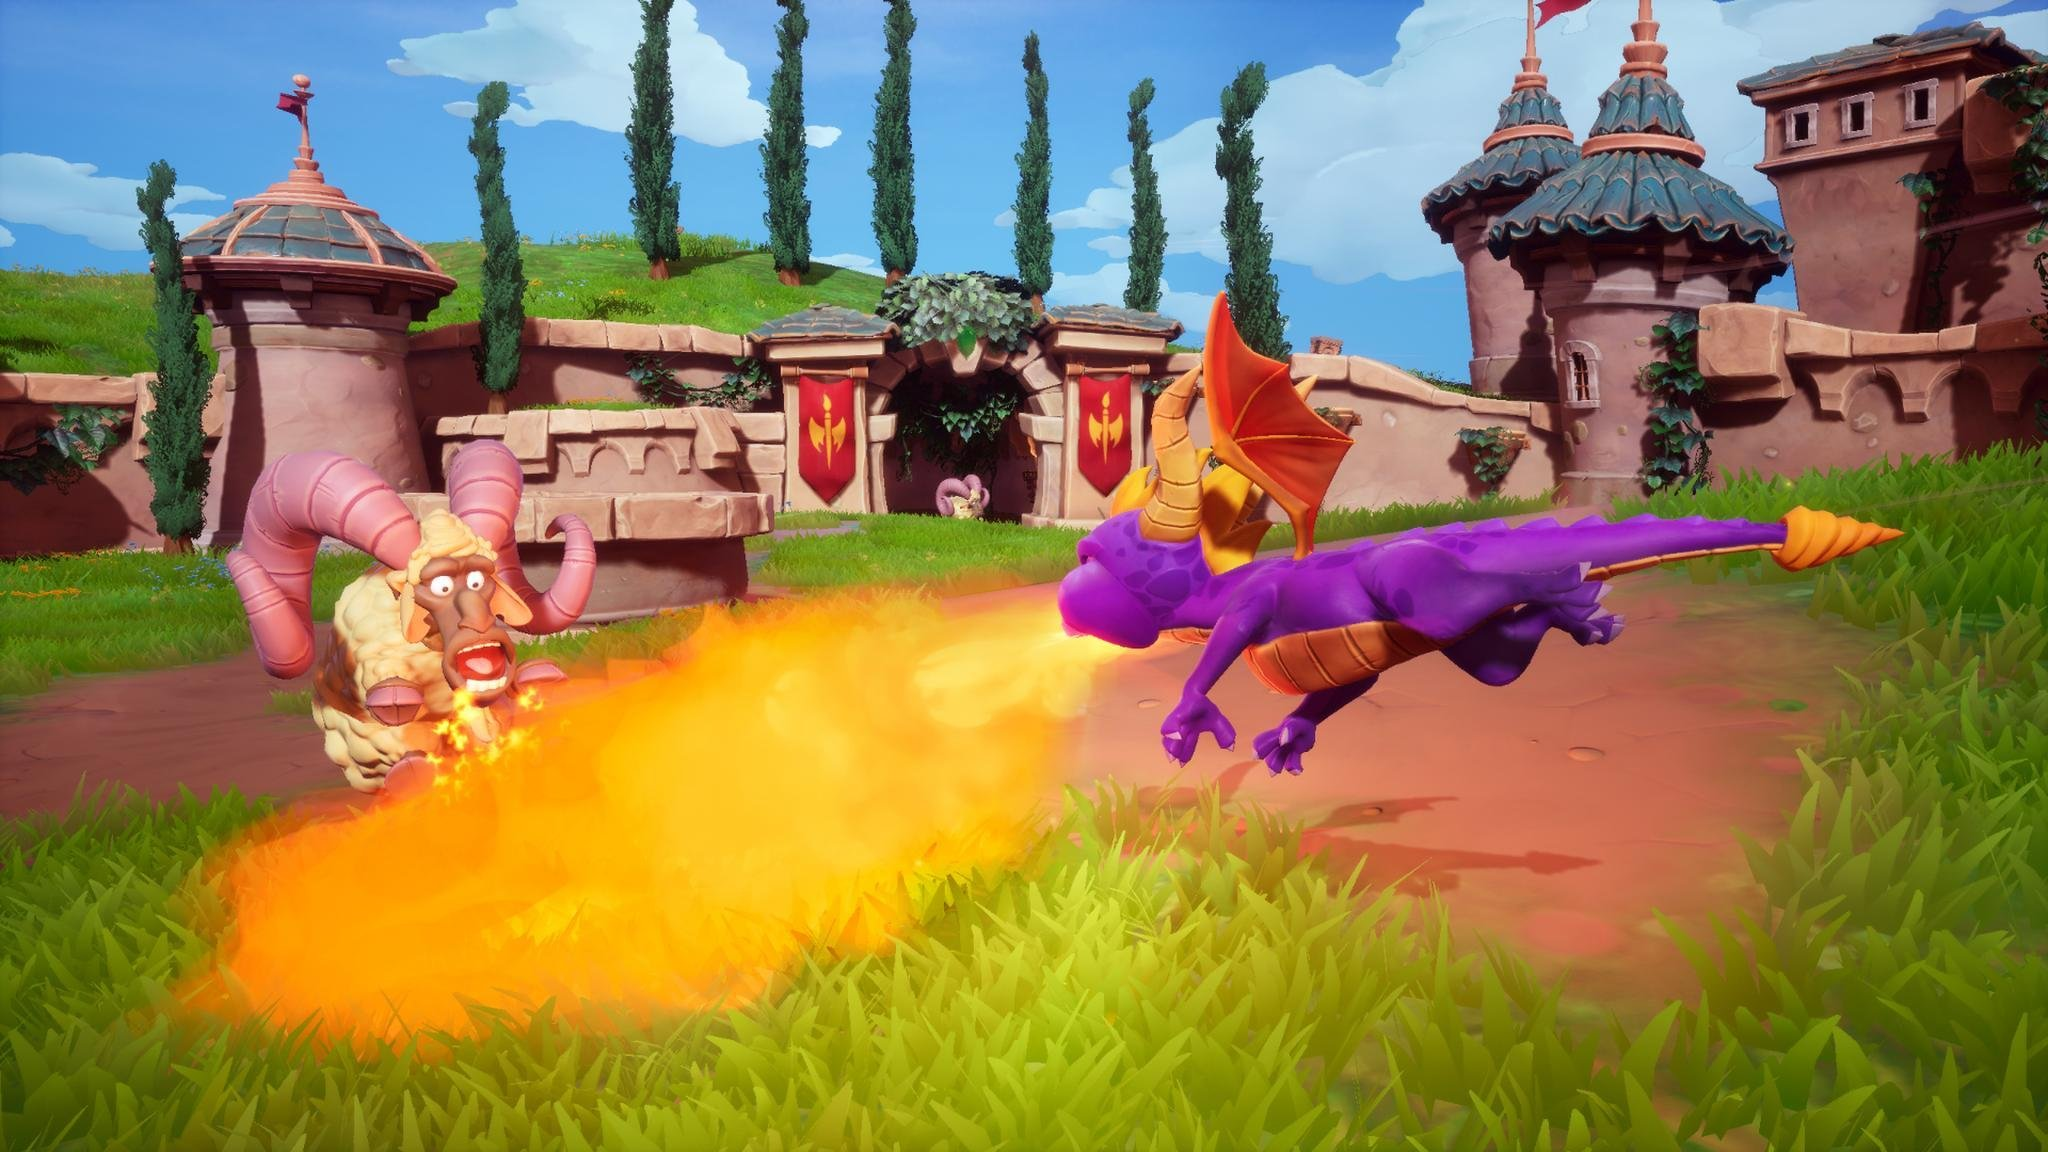 Gameplay of Spyro Reignited Trilogy